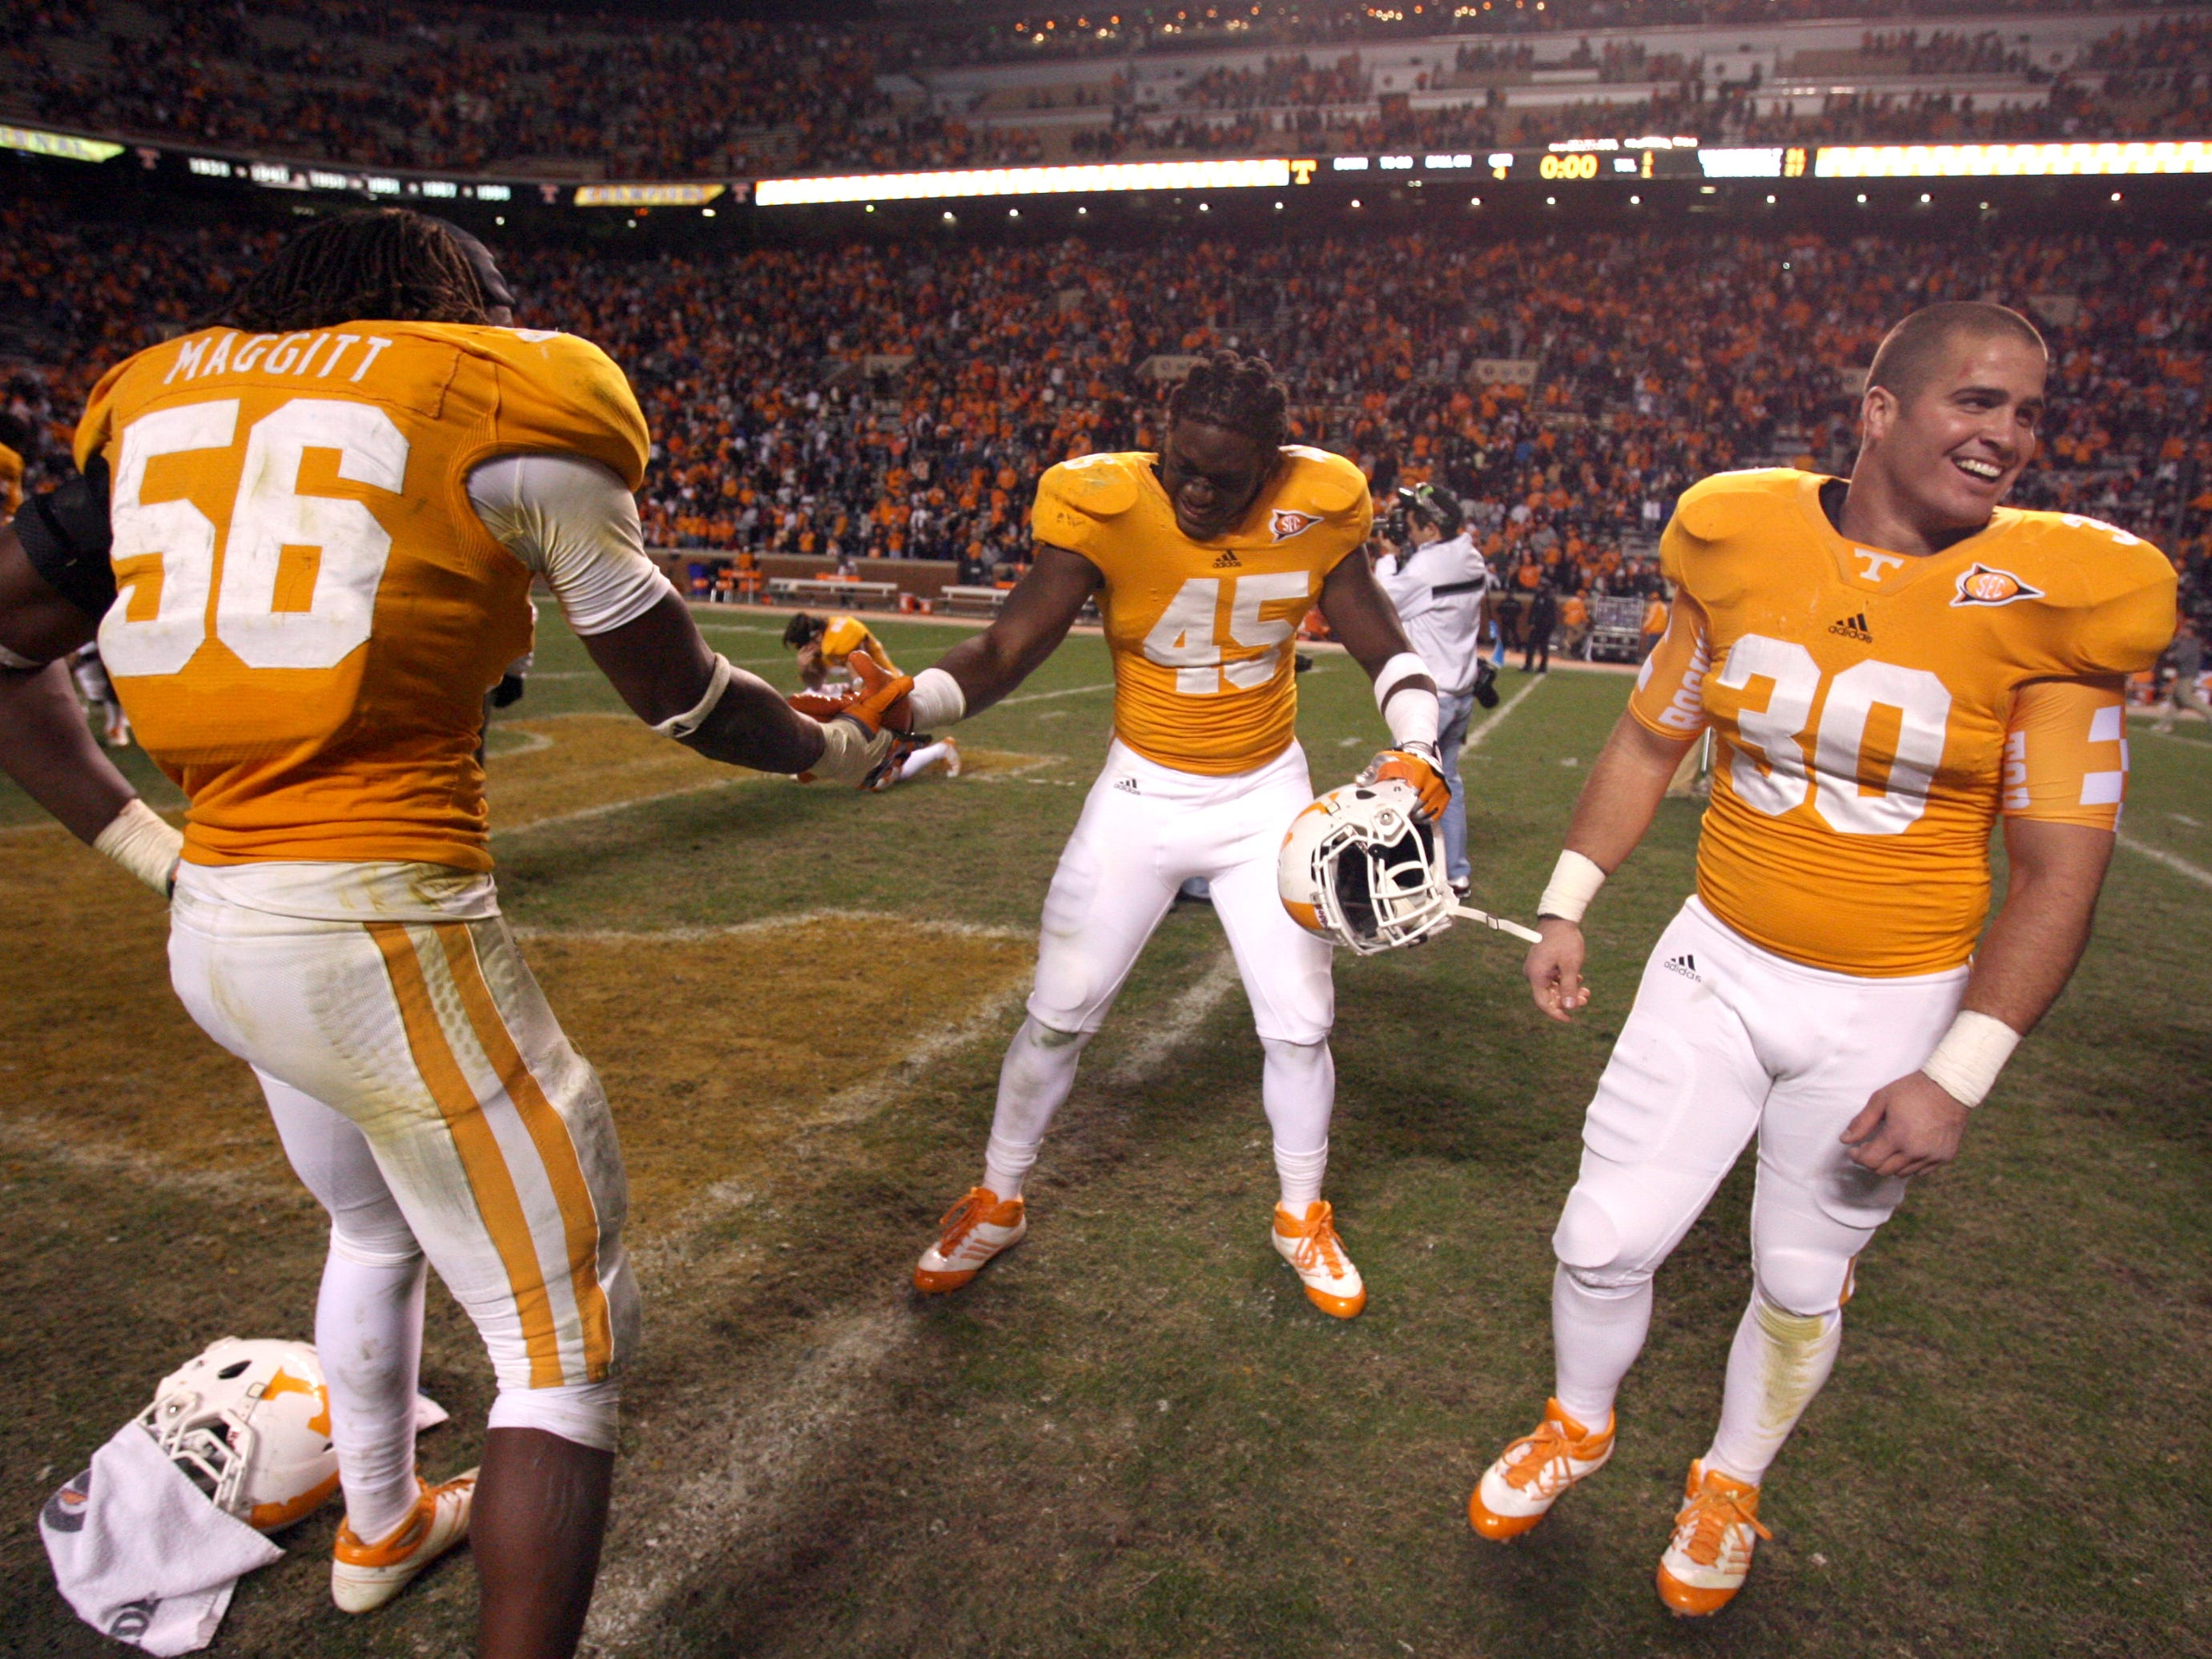 Tennessee defensive lineman Curt Maggitt (56), linebacker A.J. Johnson (45) and linebacker Shane Reveiz (30) celebrate with one another after defeating Vanderbilt 27-21 in overtime at Neyland Stadium Saturday, Nov. 19, 2011.